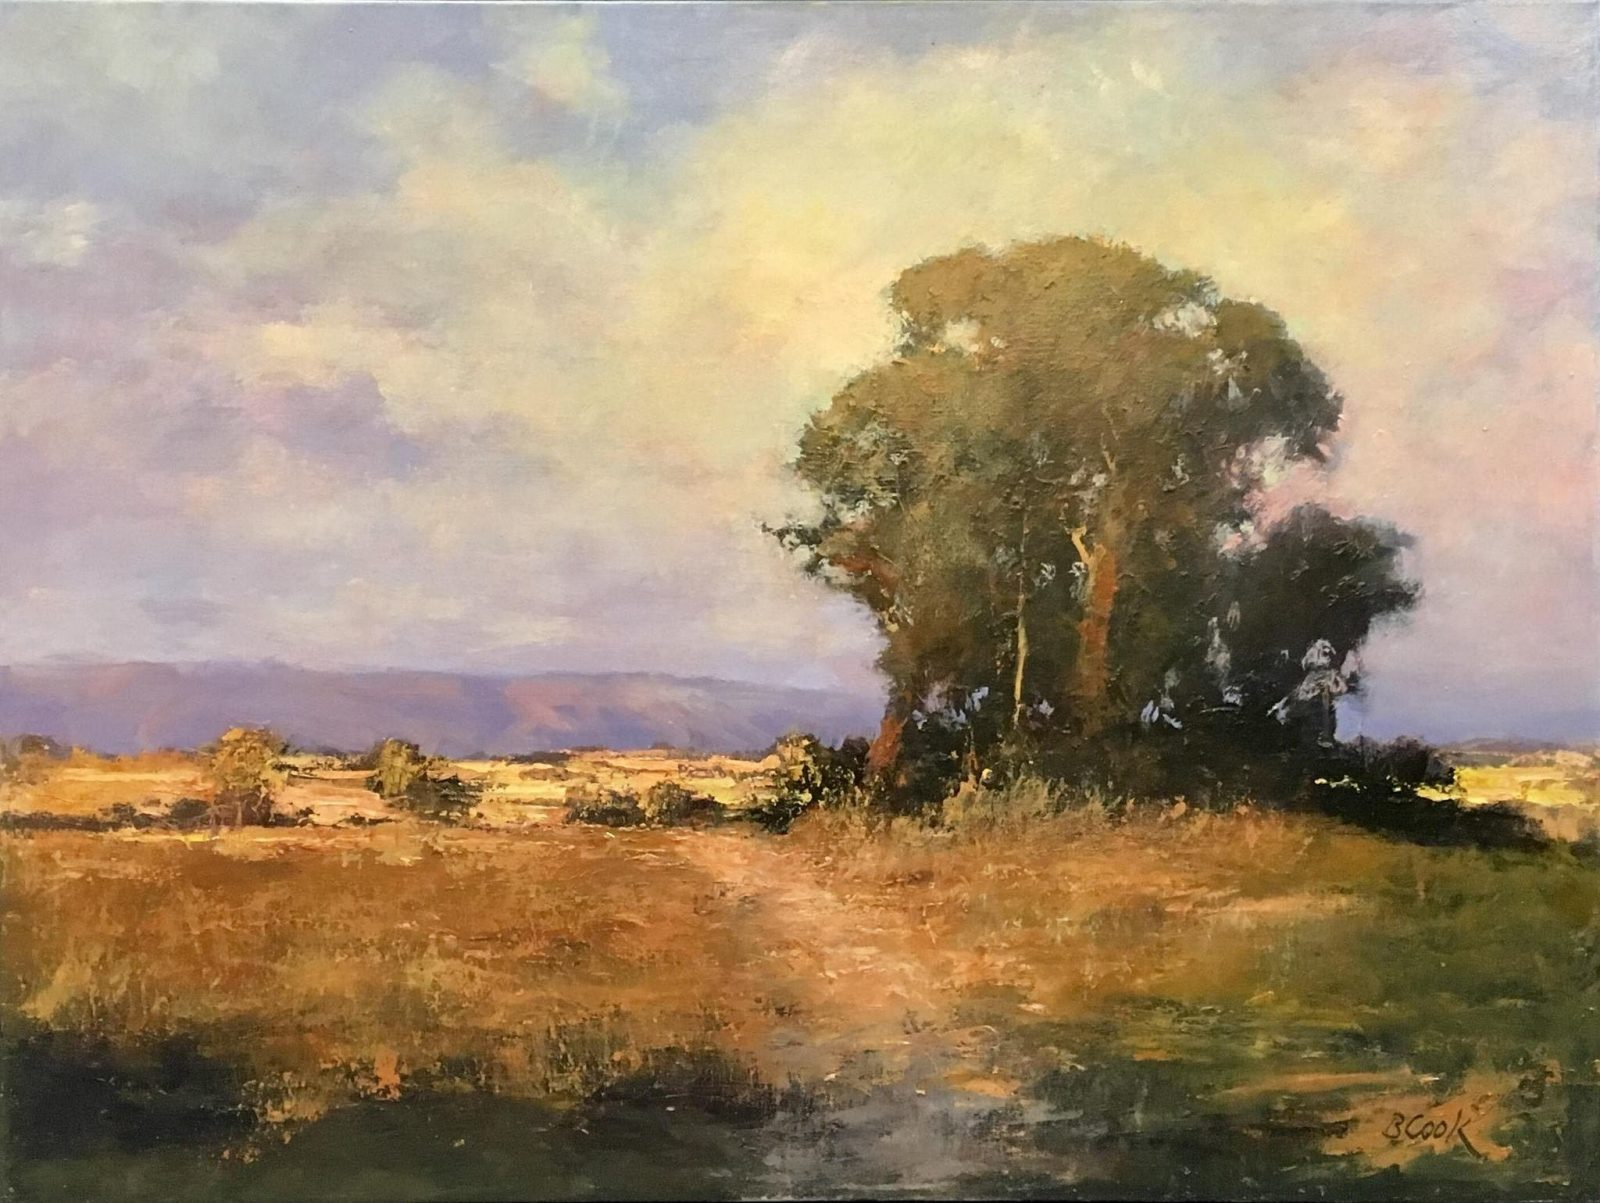 Brian Cook, Mt. Cotton, oil on canvas, 2017 winner